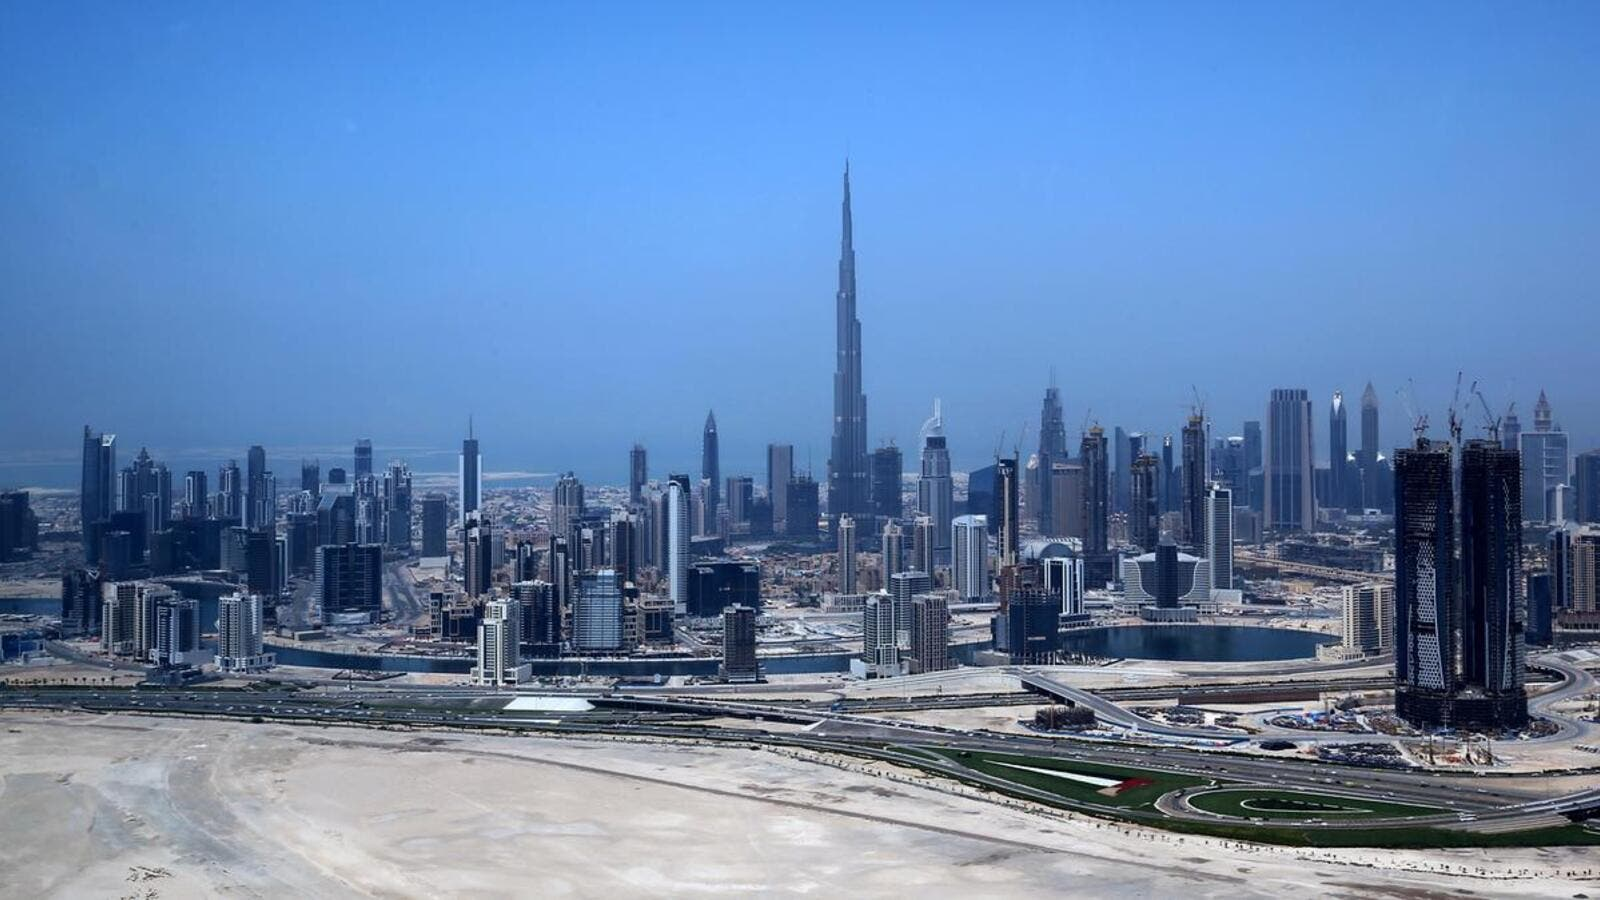 A security guard has been sentenced to three months in jail after molesting 9 year old girl in Dubai. (AFP/ File Photo)